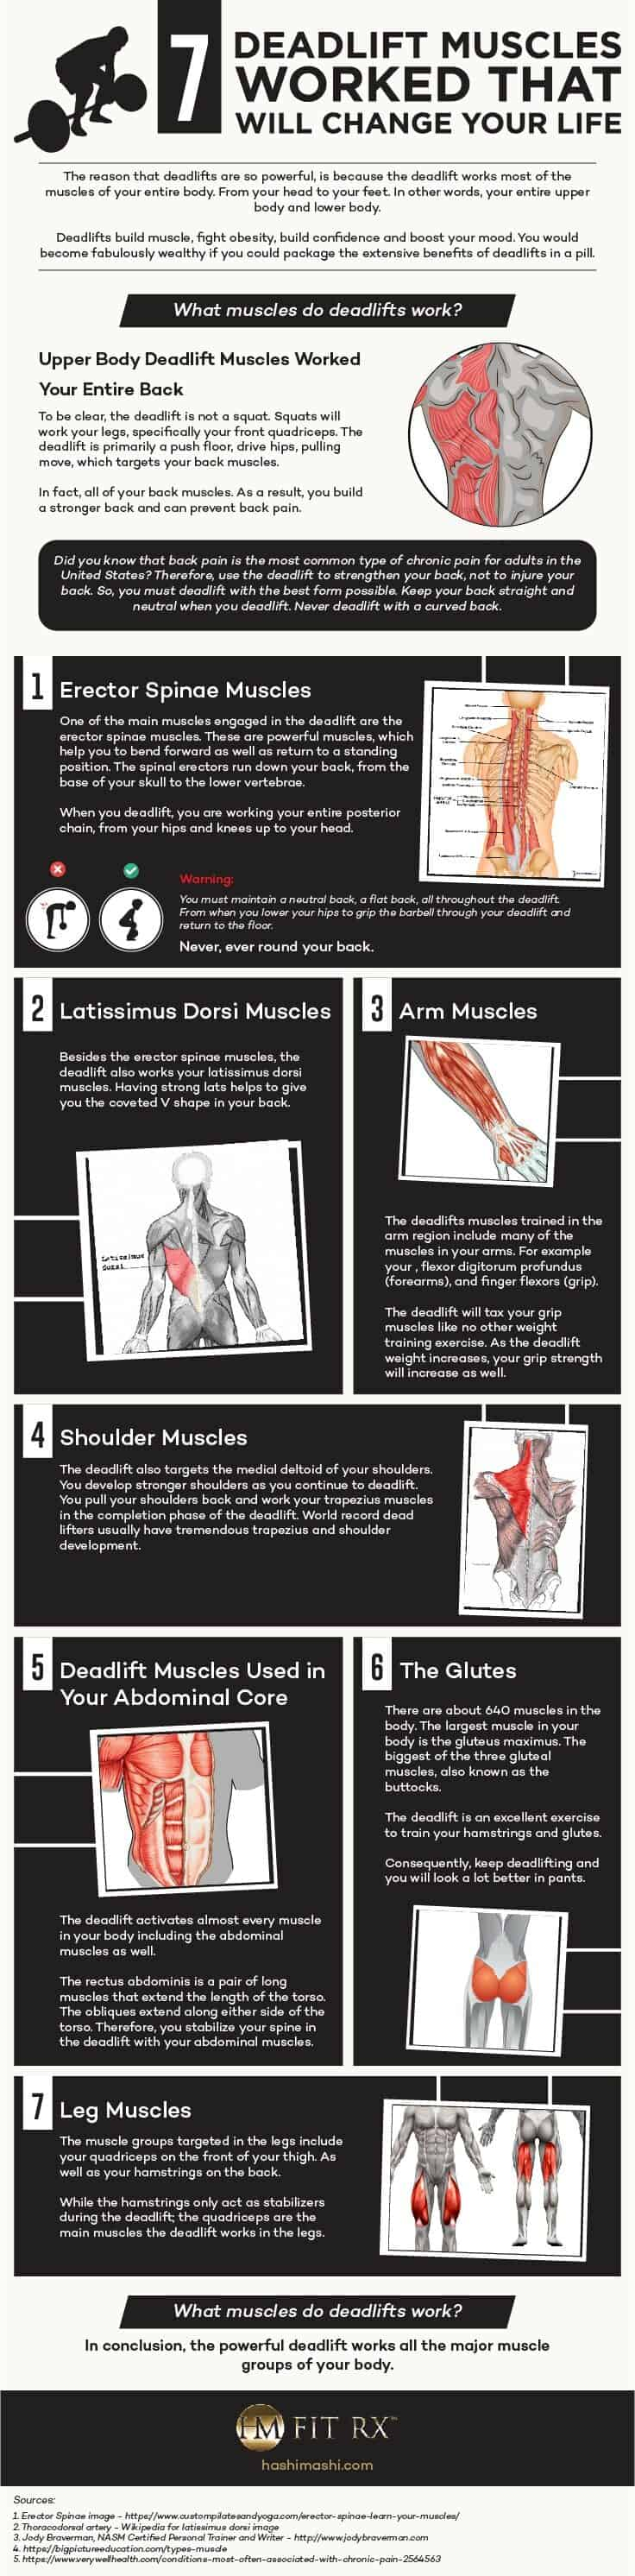 deadlift muscles worked diagram Infographic Credit HashiMashi.com